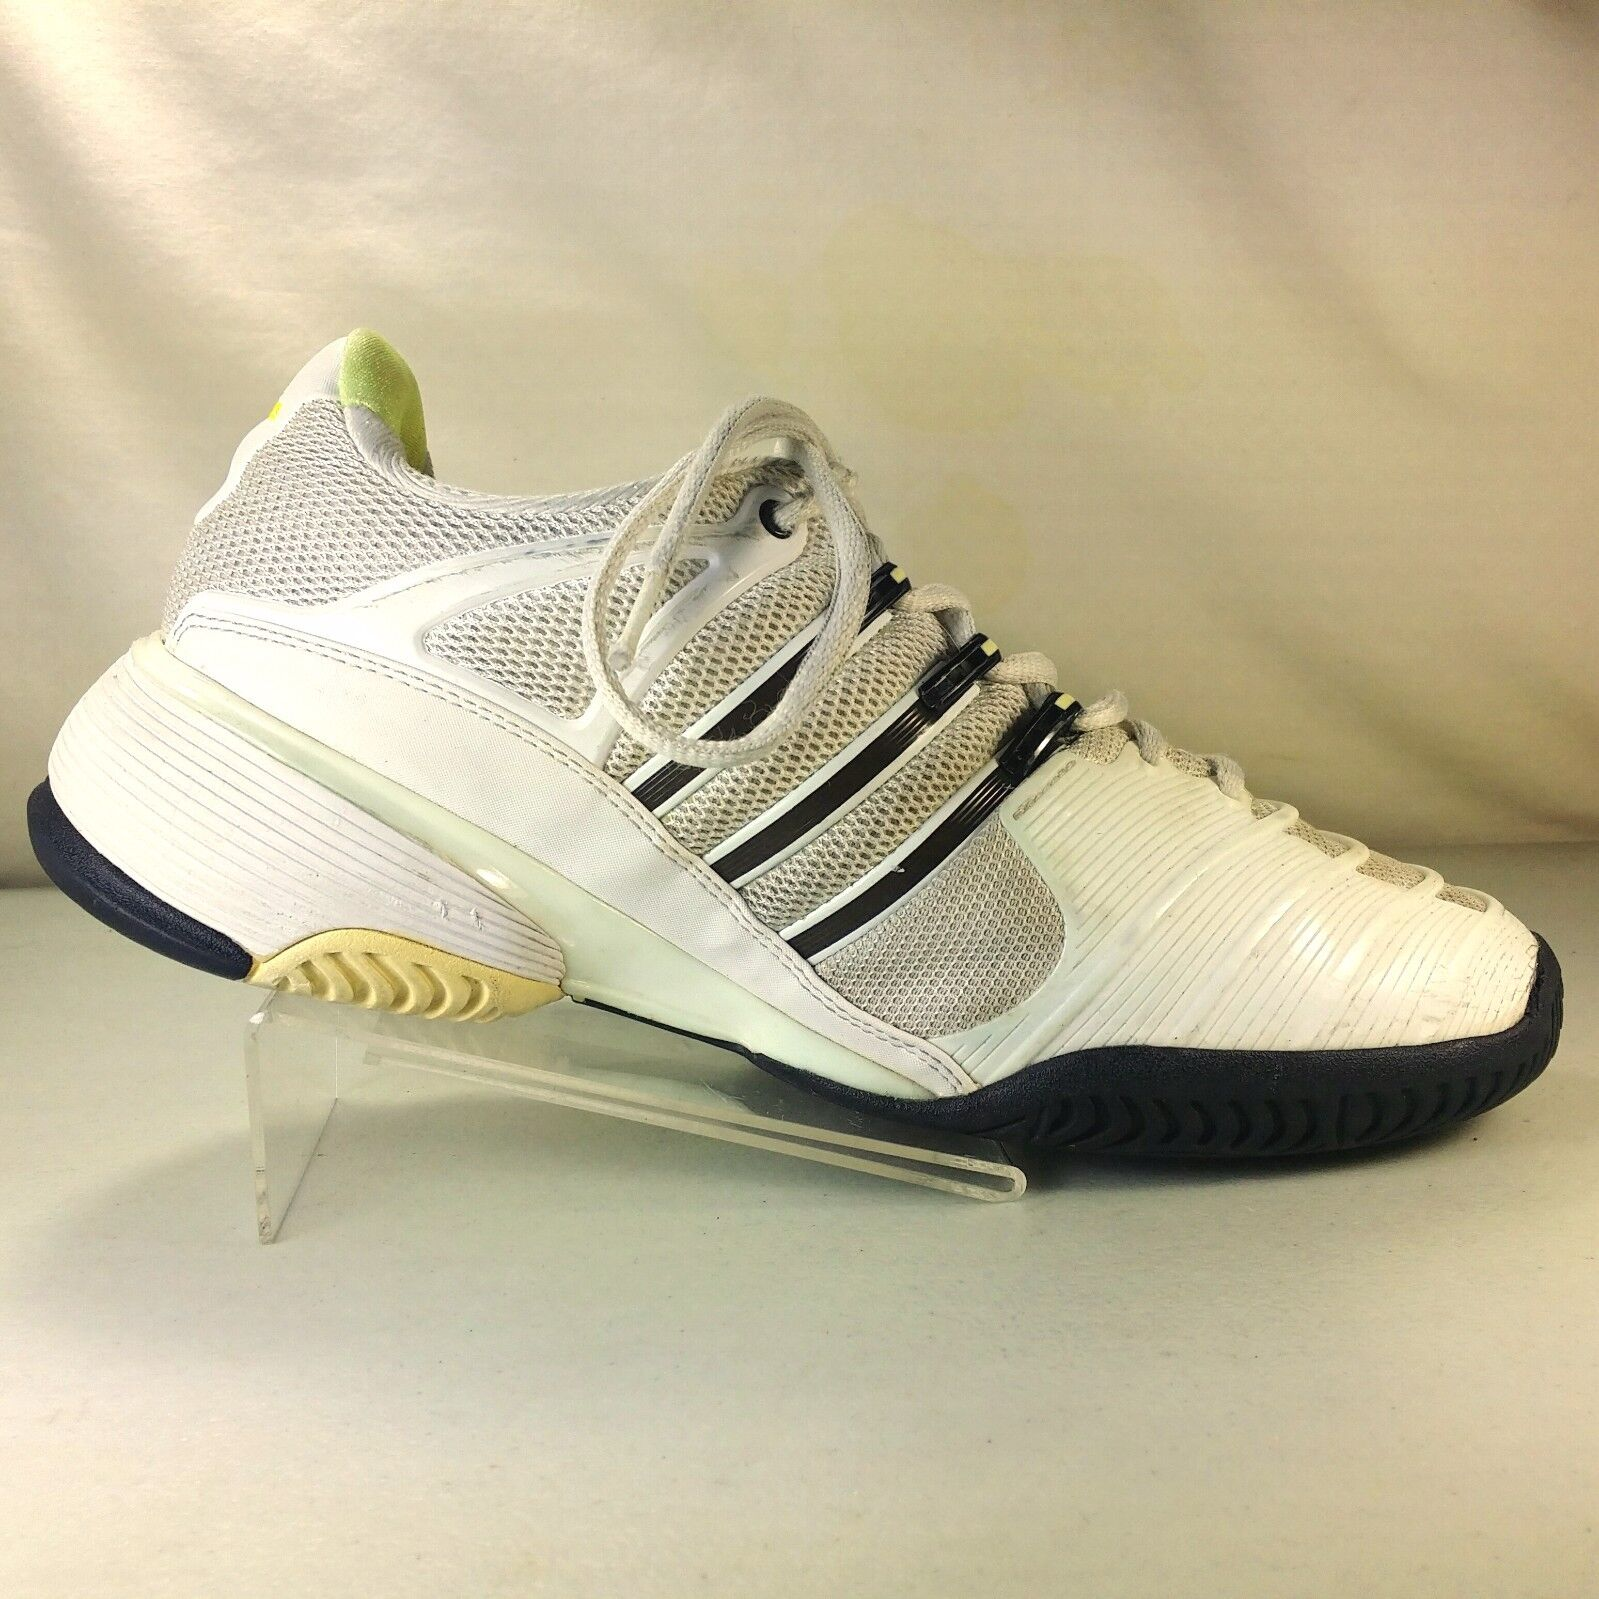 Adidas Barricade Torsion System Womens White  Athletic Shoes Size 7.5